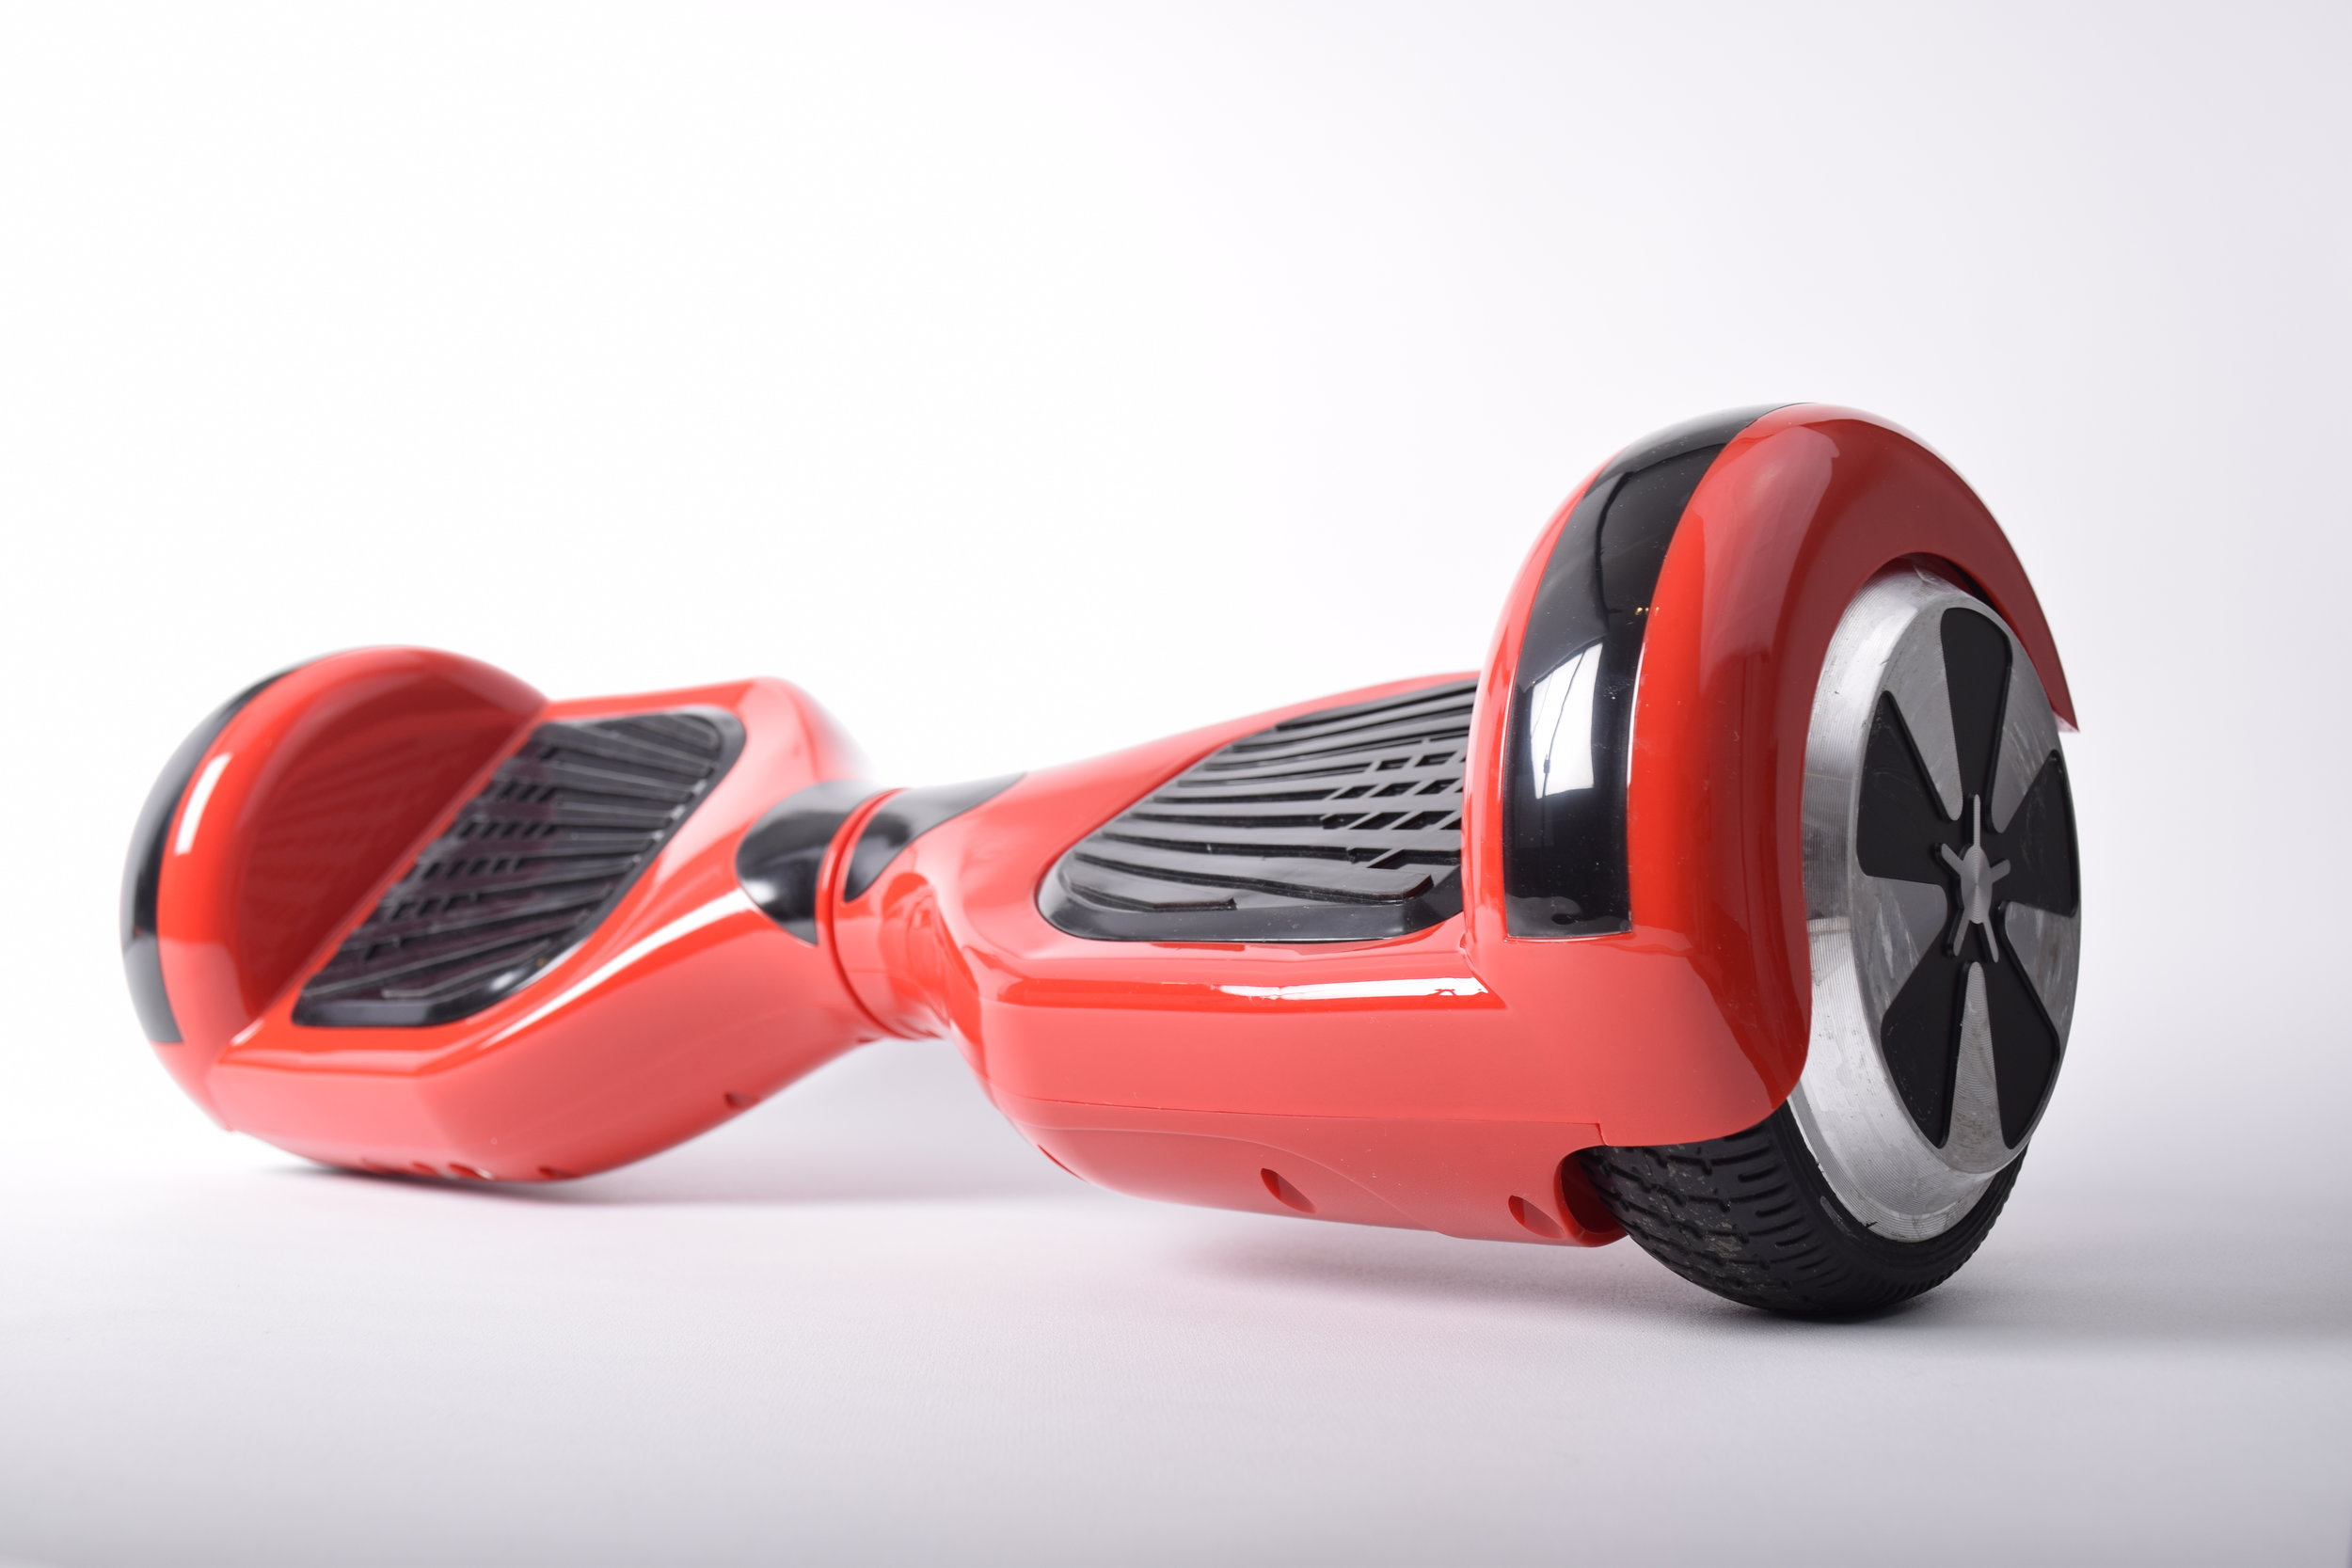 Shooting a Hoverboard Scooter for my client